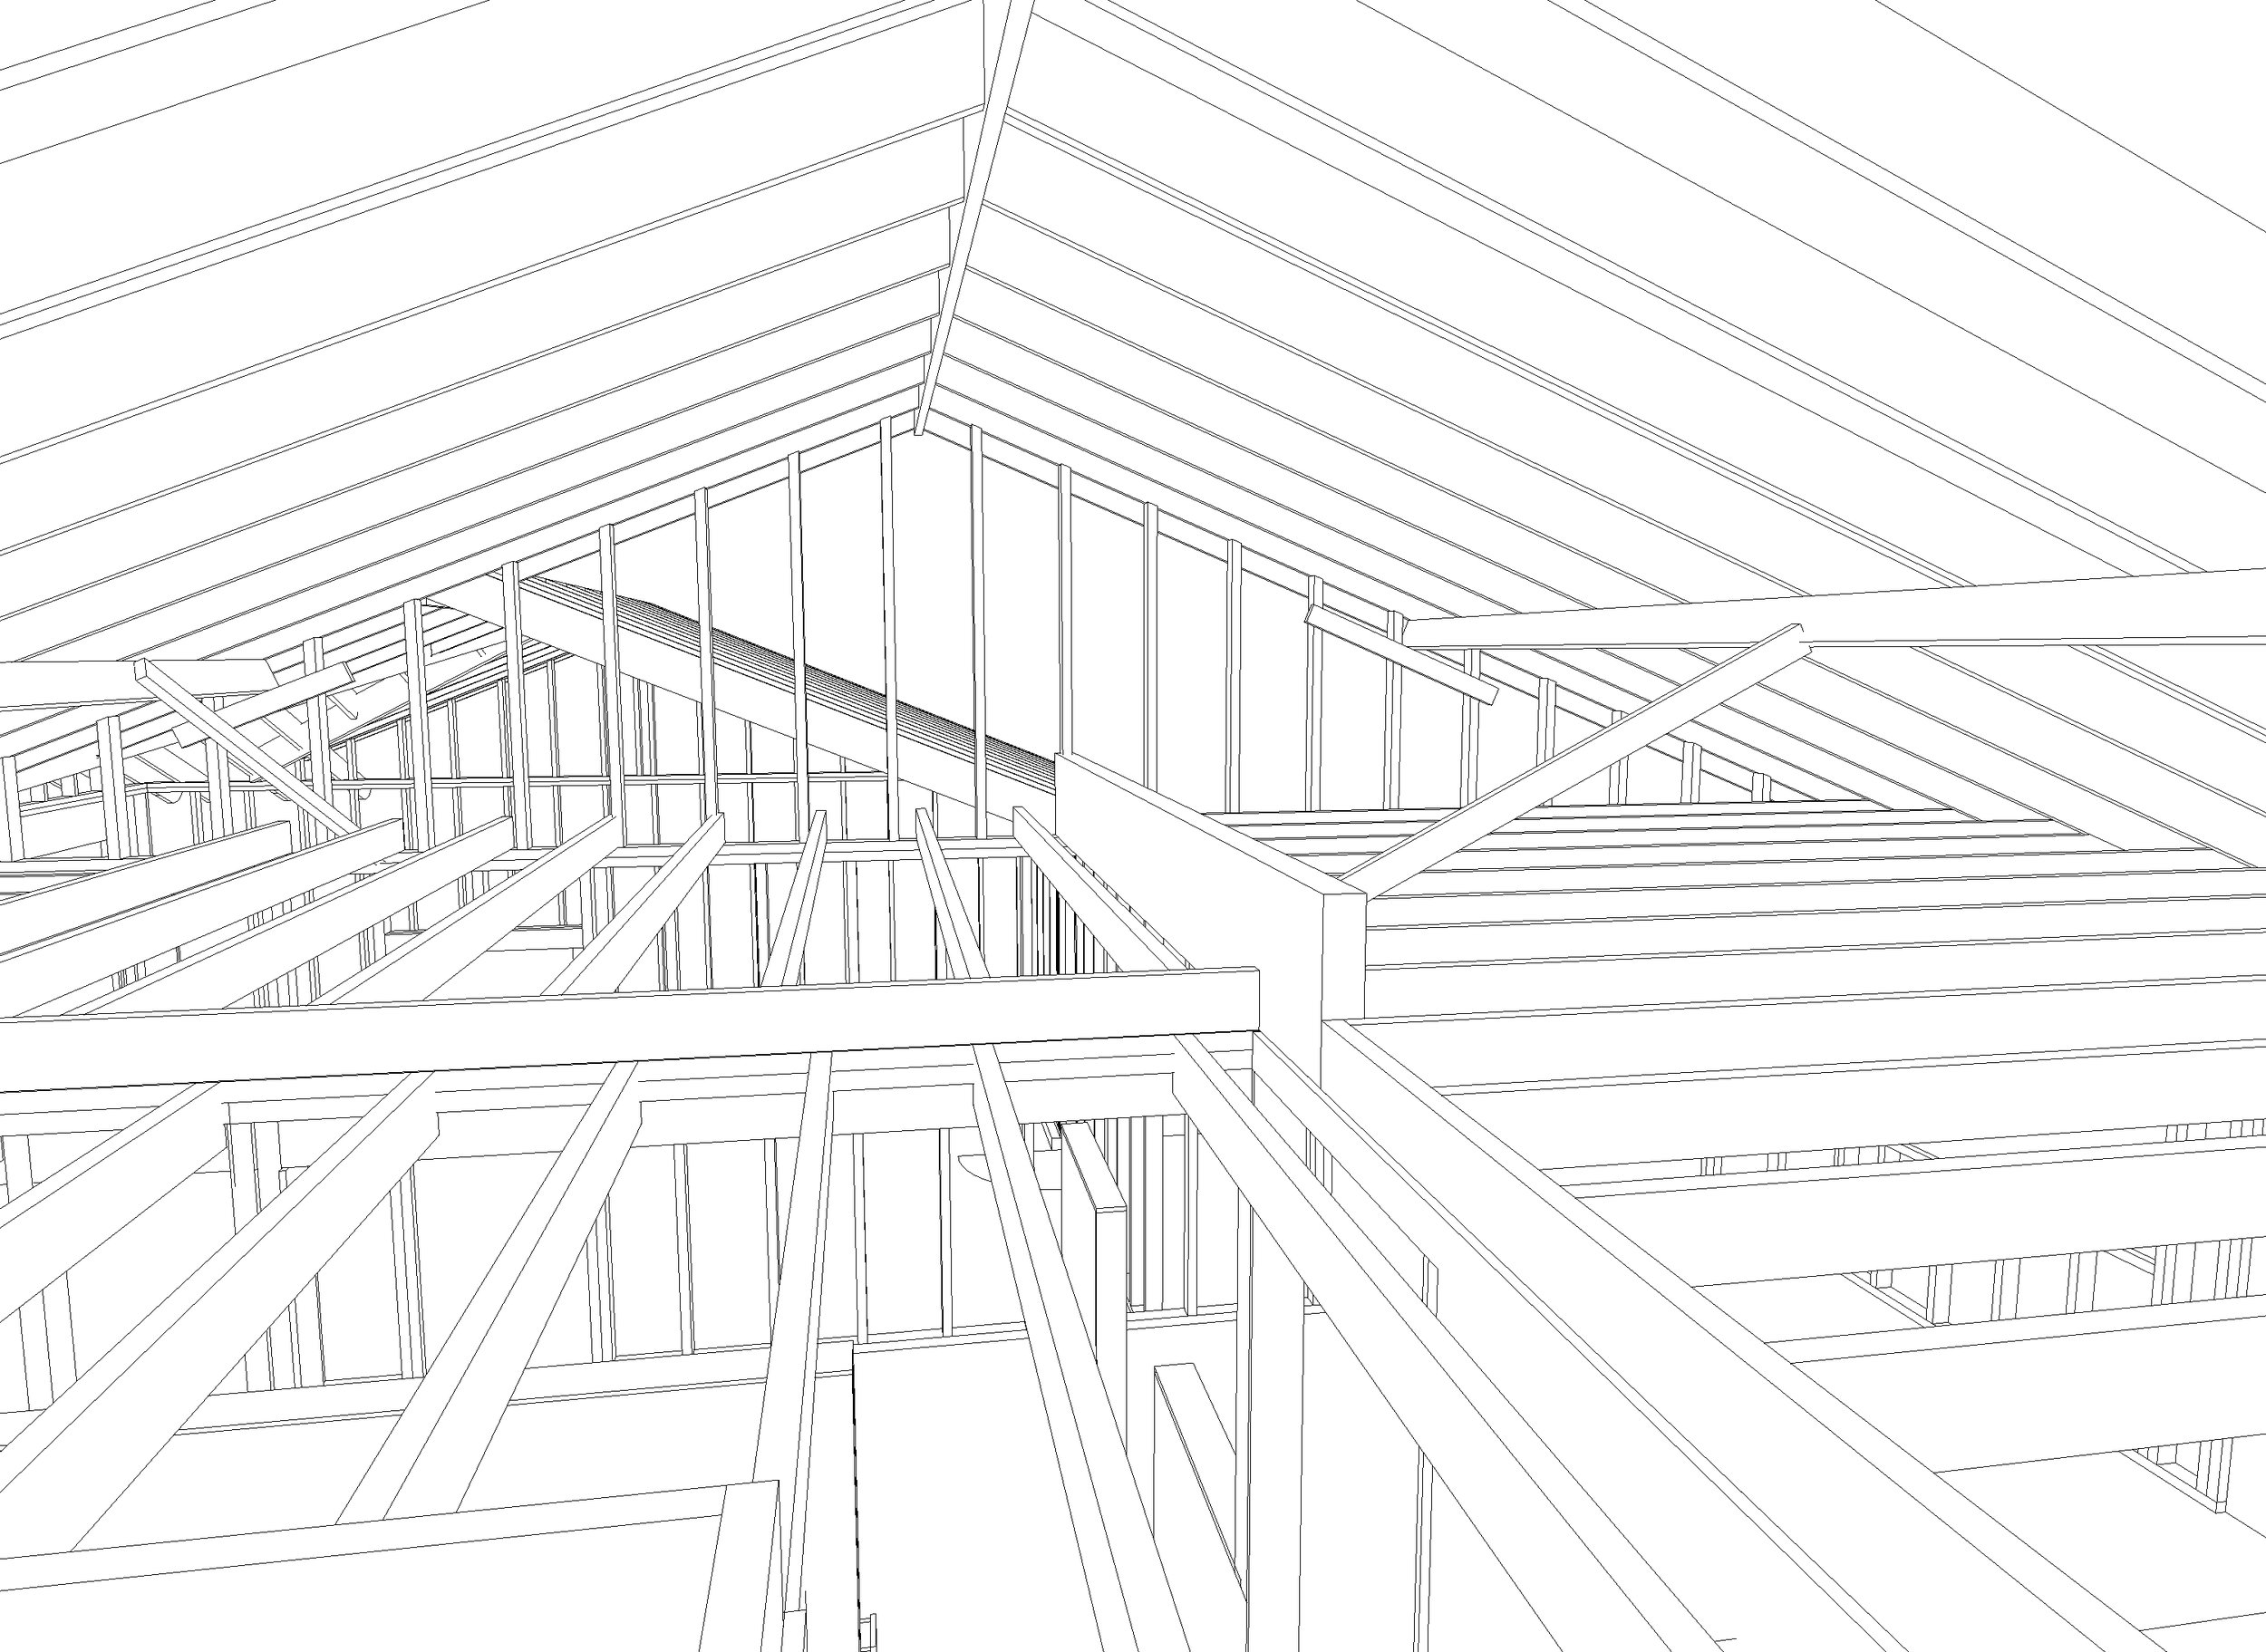 Drawing of the existing ceiling and roof structure, looking north. Note the purlins supporting the 2x6 rafters mid-span. I think I left out some supports for the purlins in this drawing. There were regularly spaced supports resting on bearing walls or that giant 6x13 beam shown in the center-right.